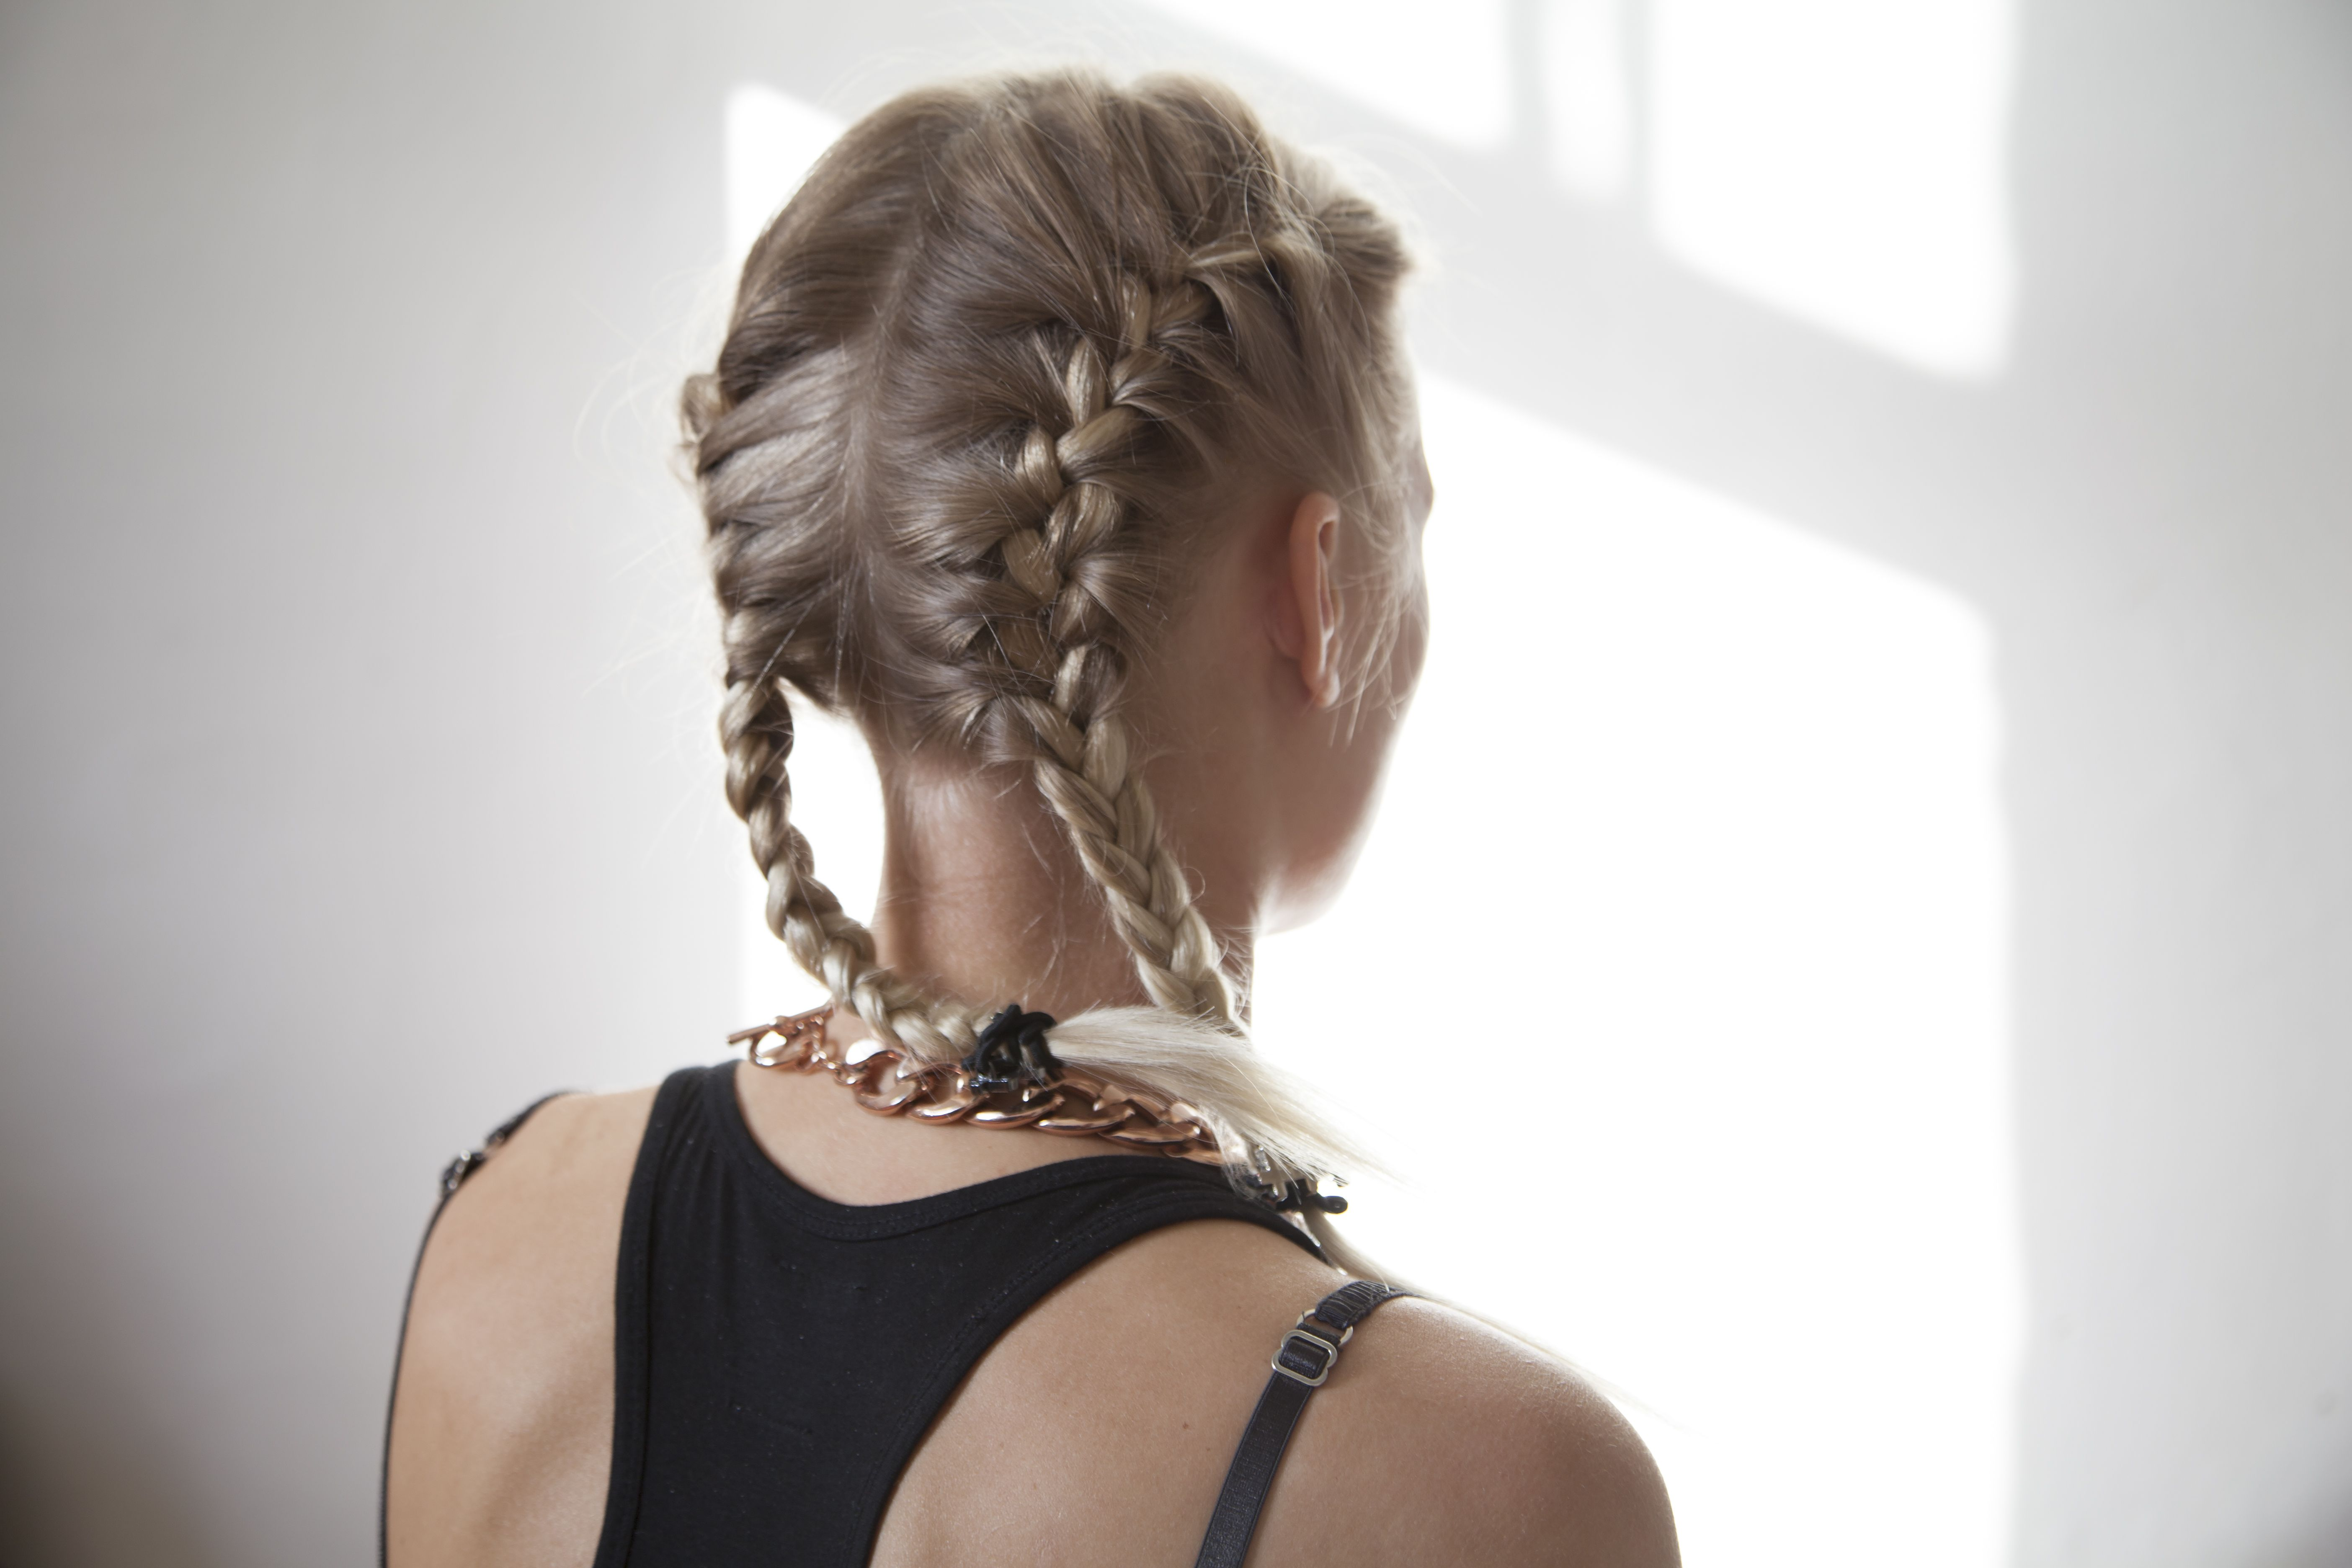 How To Do Two French Braids On The Side Of Your Head Two French Braids French Braid Pigtails Side French Braids